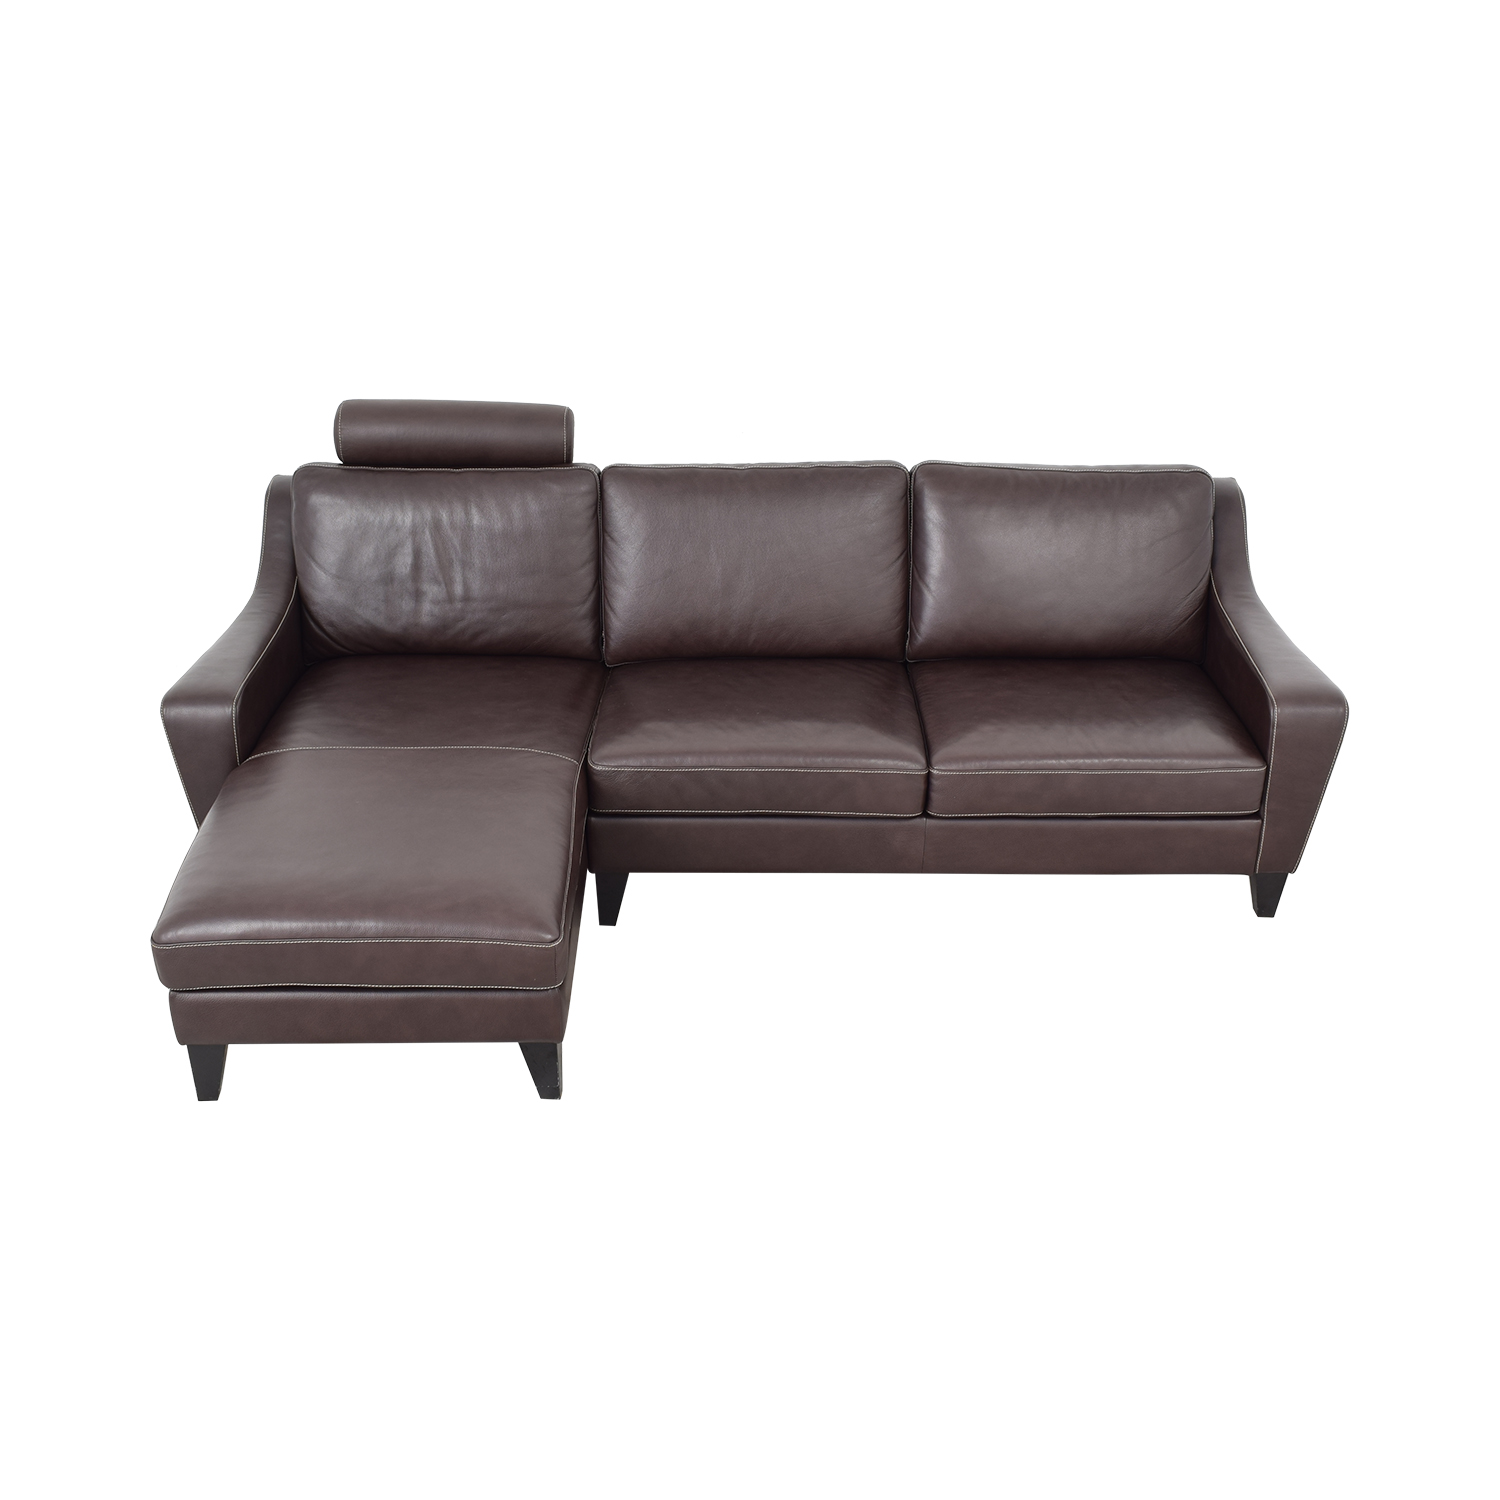 Lind Lind Chaise Sofa with Headrest and Ottoman second hand